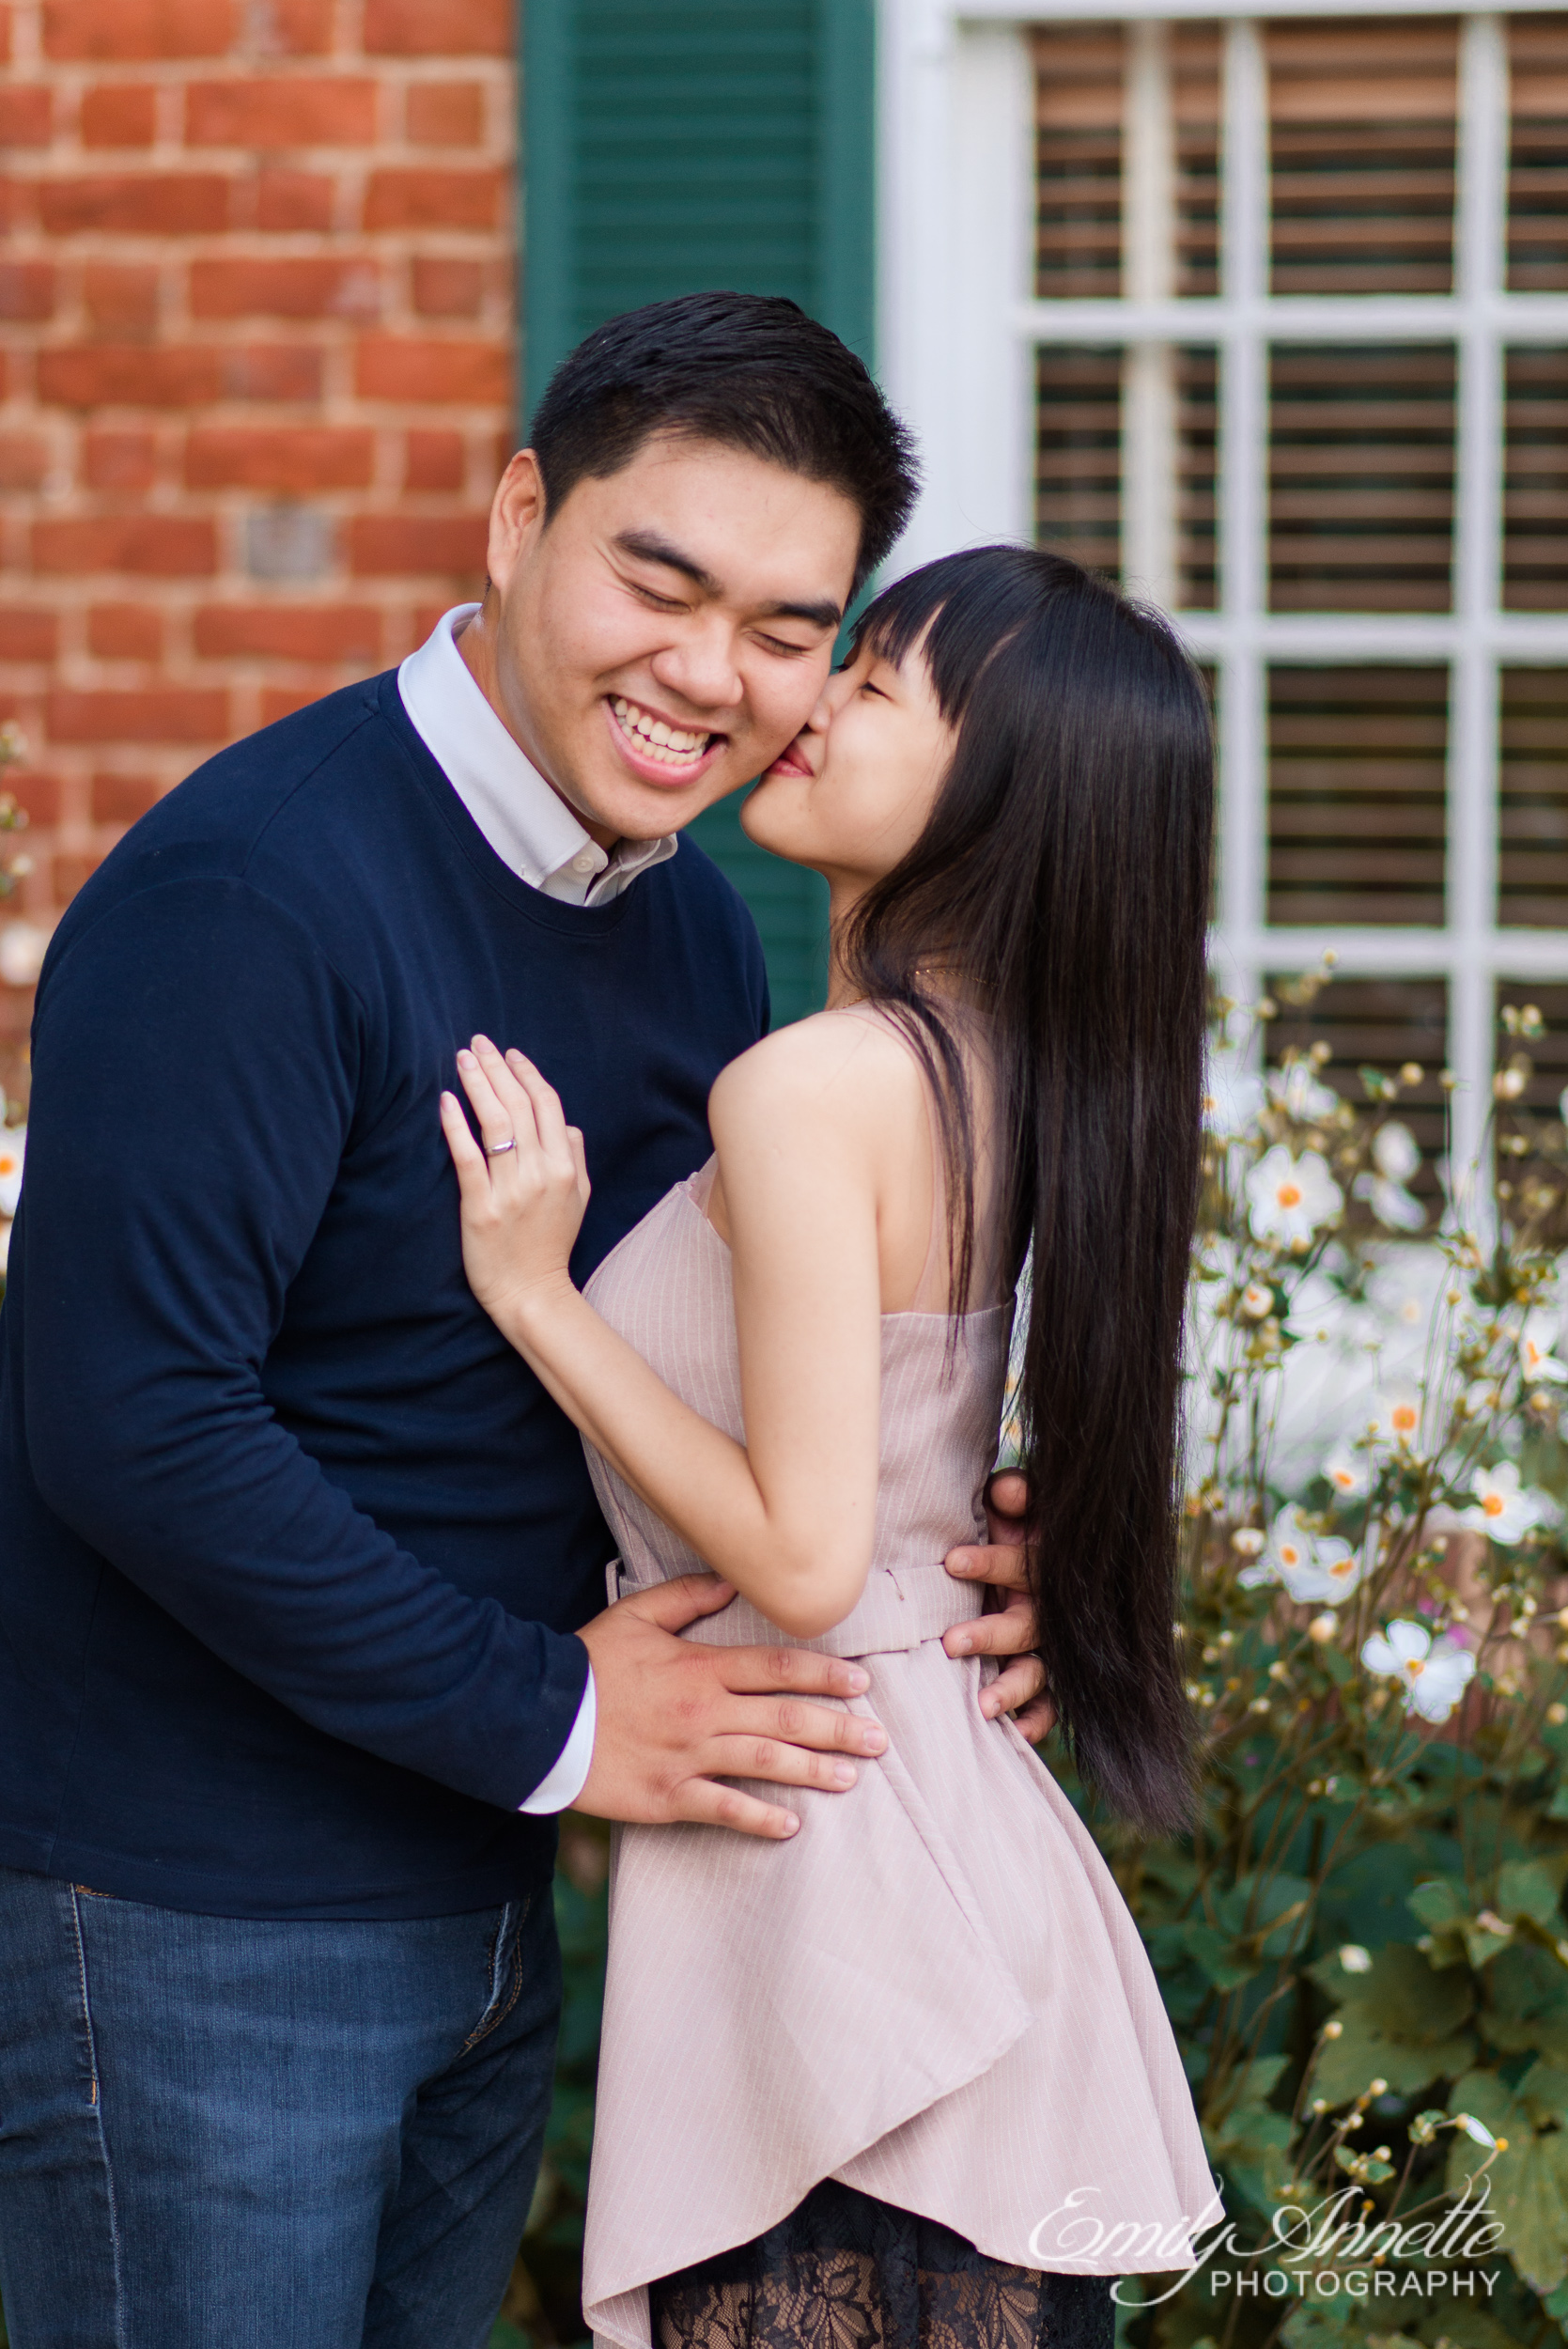 A young woman kisses her boyfriend's cheek outside the historic house at Green Spring Gardens Park in Fairfax, Virginia